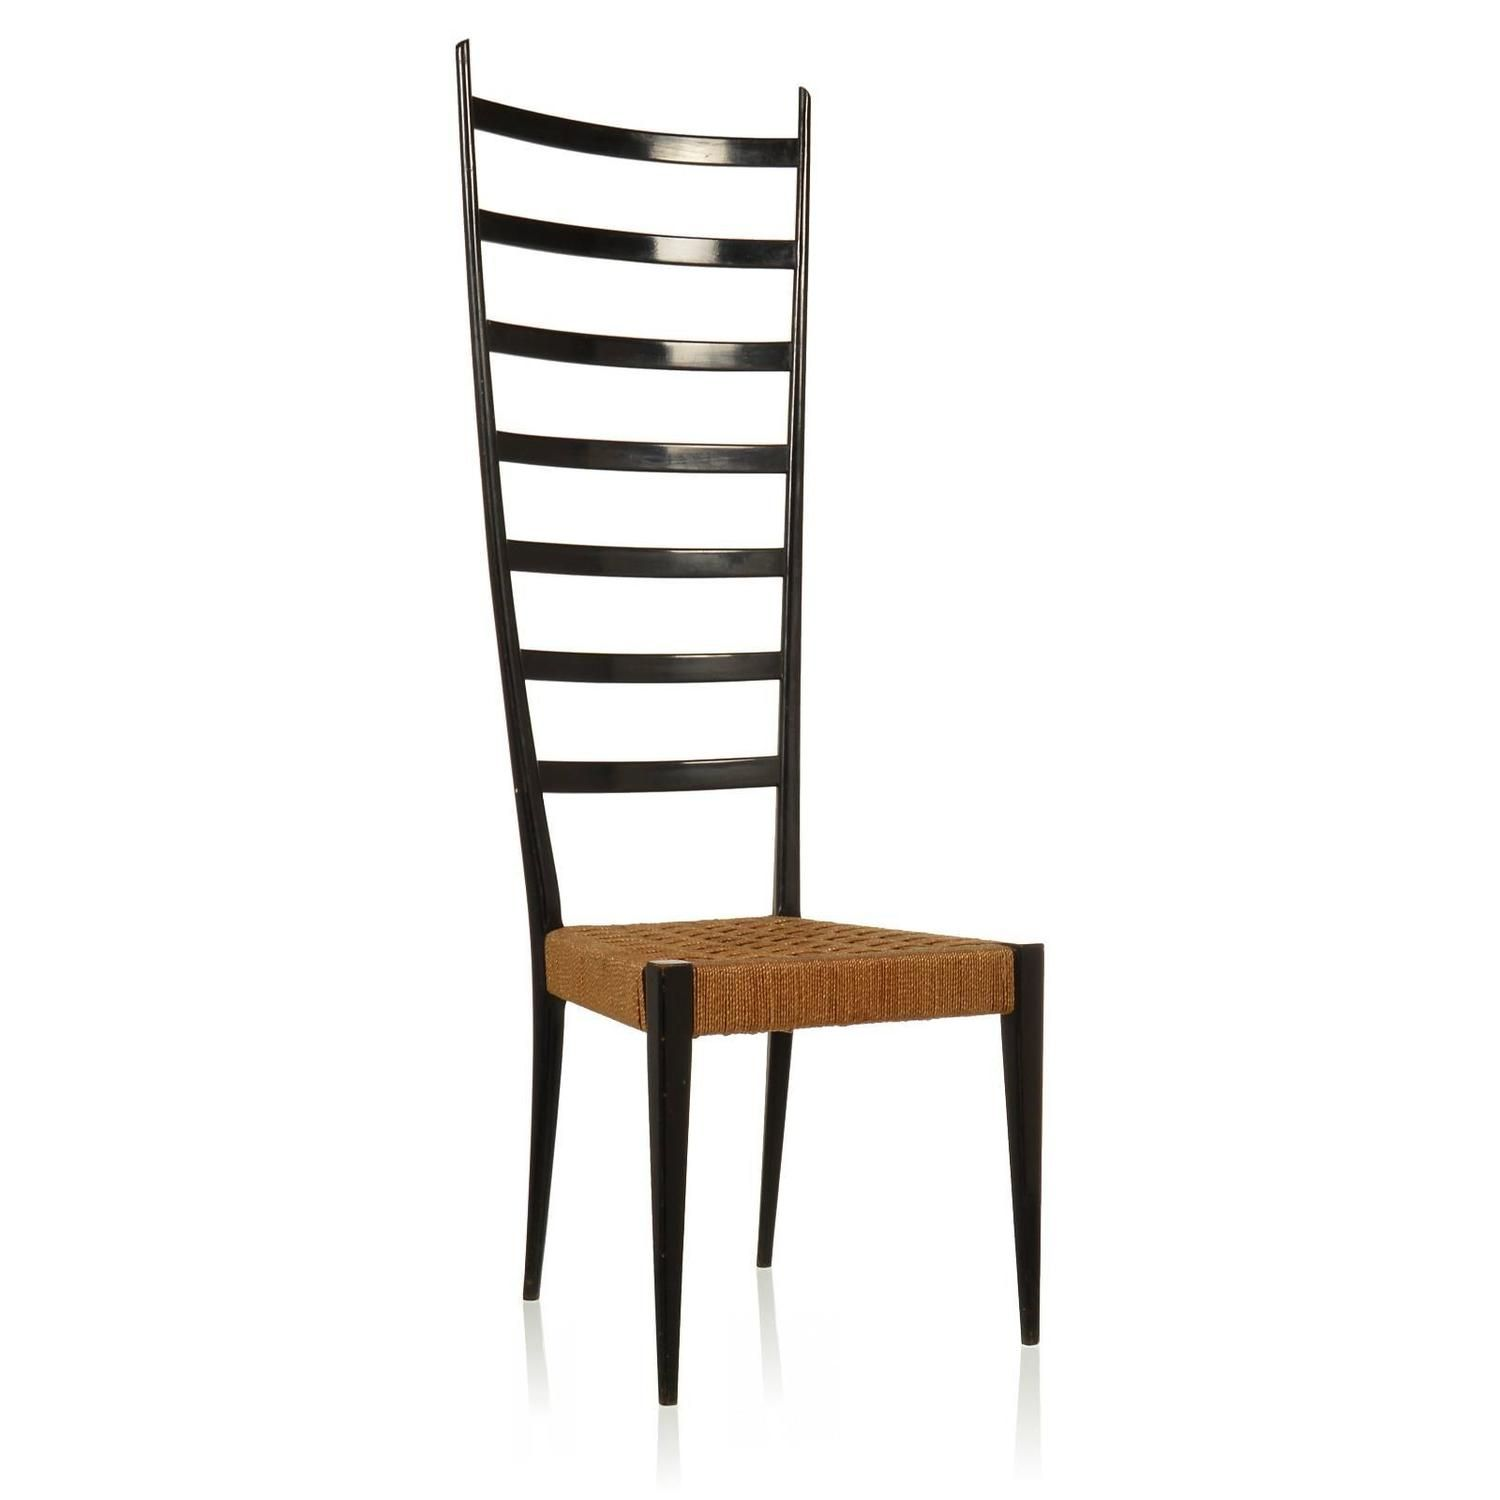 Gio Ponti Style High Ladder Back Chair